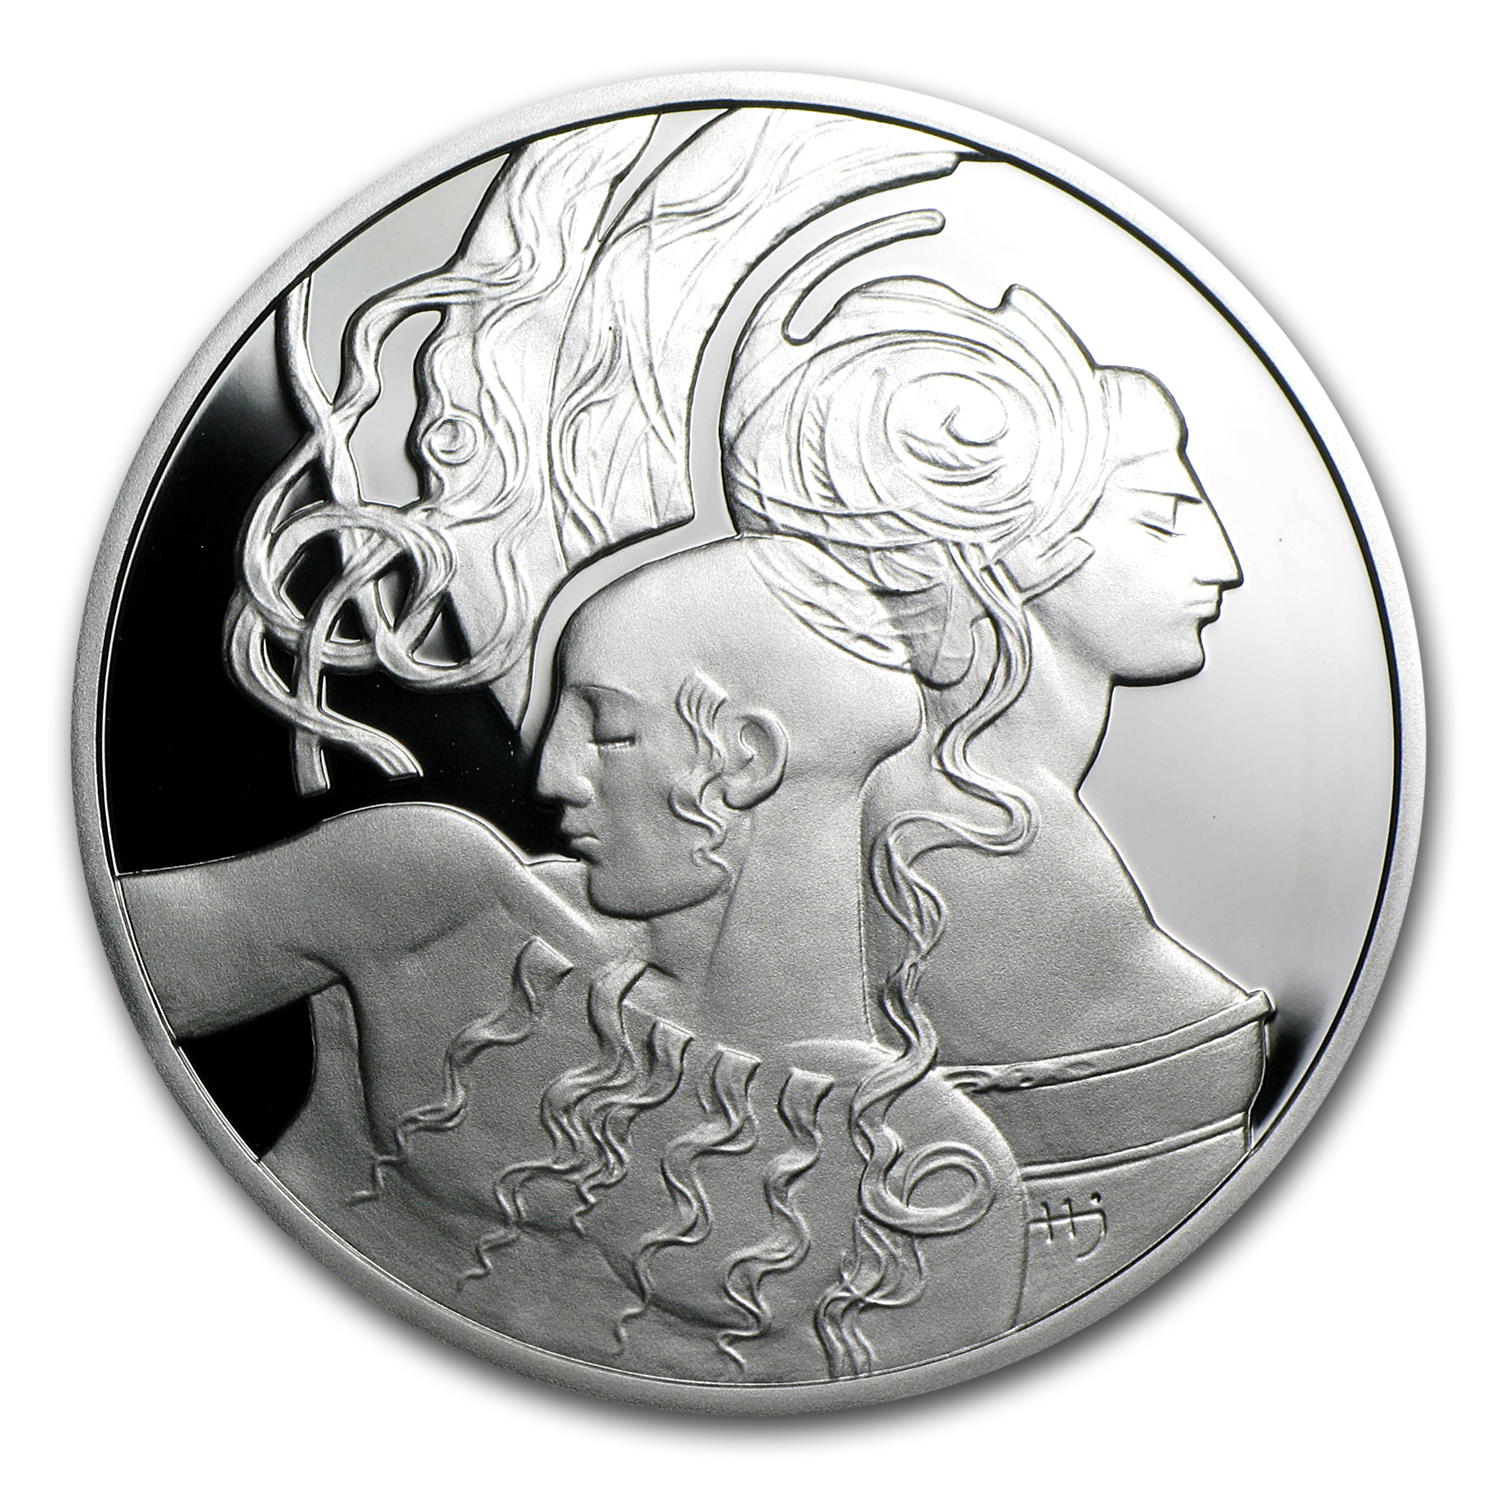 2010 Niue Proof Silver $1 Famous Love Stories Samson & Delilah